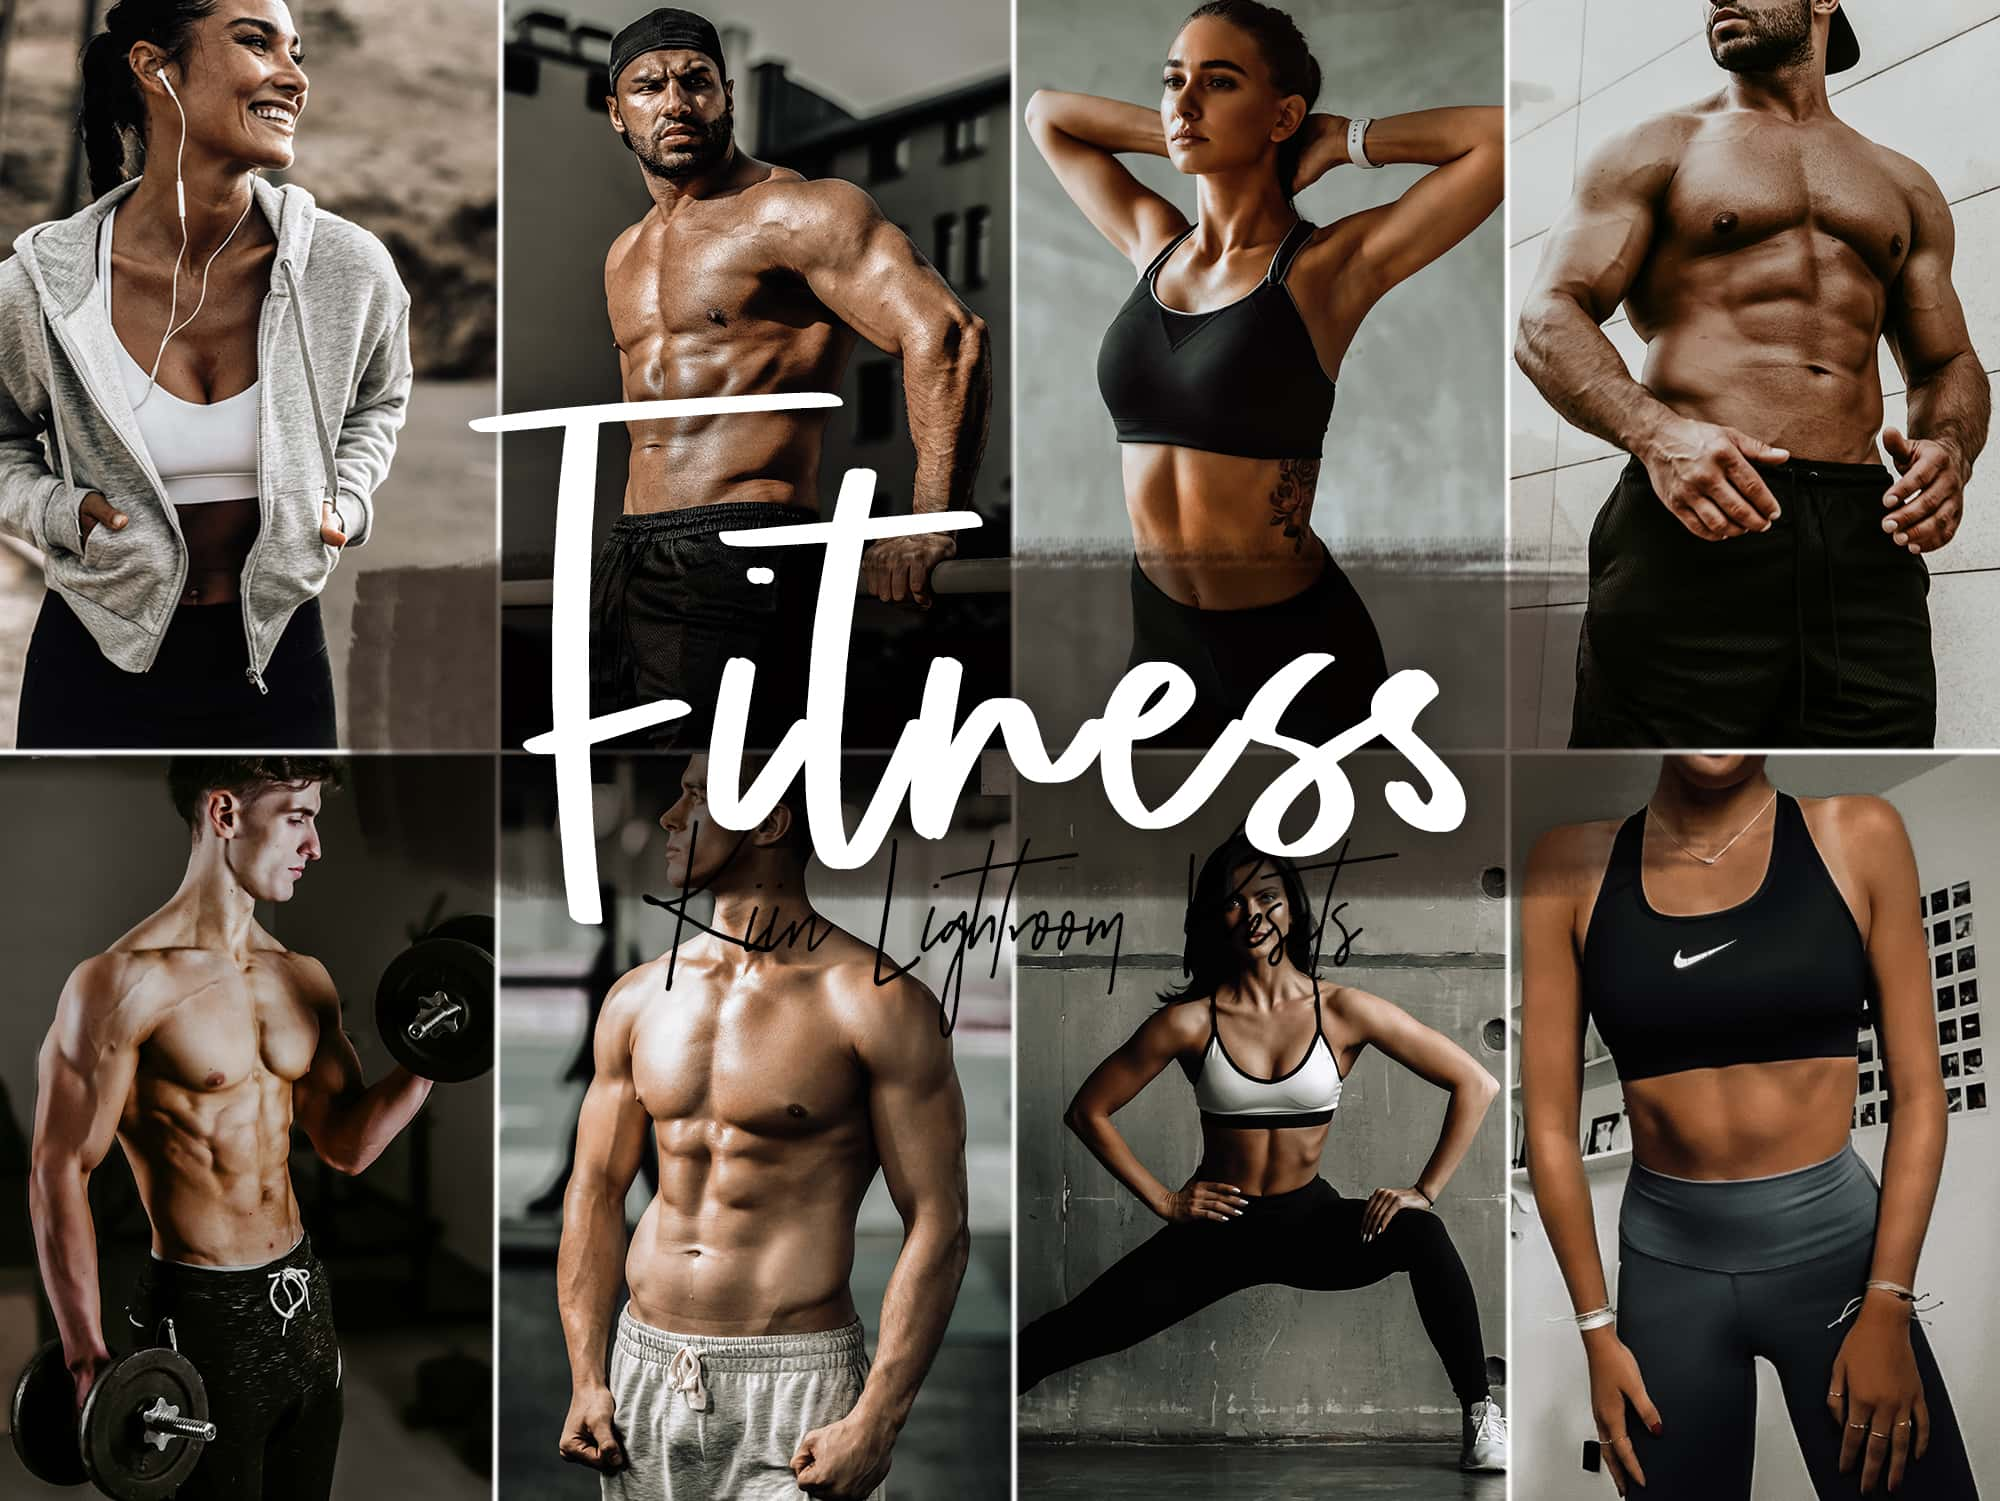 Fitness Presets for Mobile and Desktop - Dark and Moody, Urban - KIIN